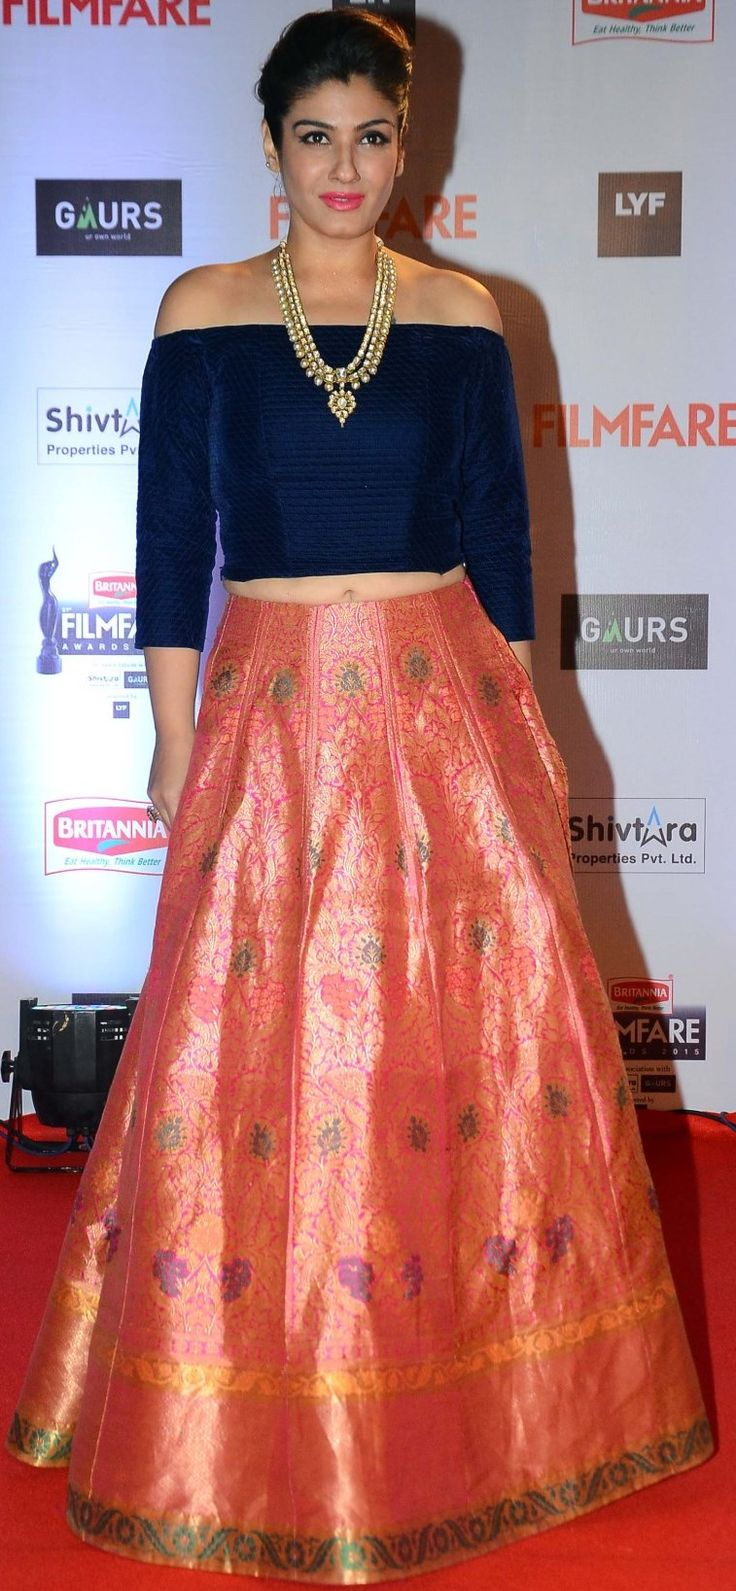 ♥ beautiful dress, i guess it is manish malhotra